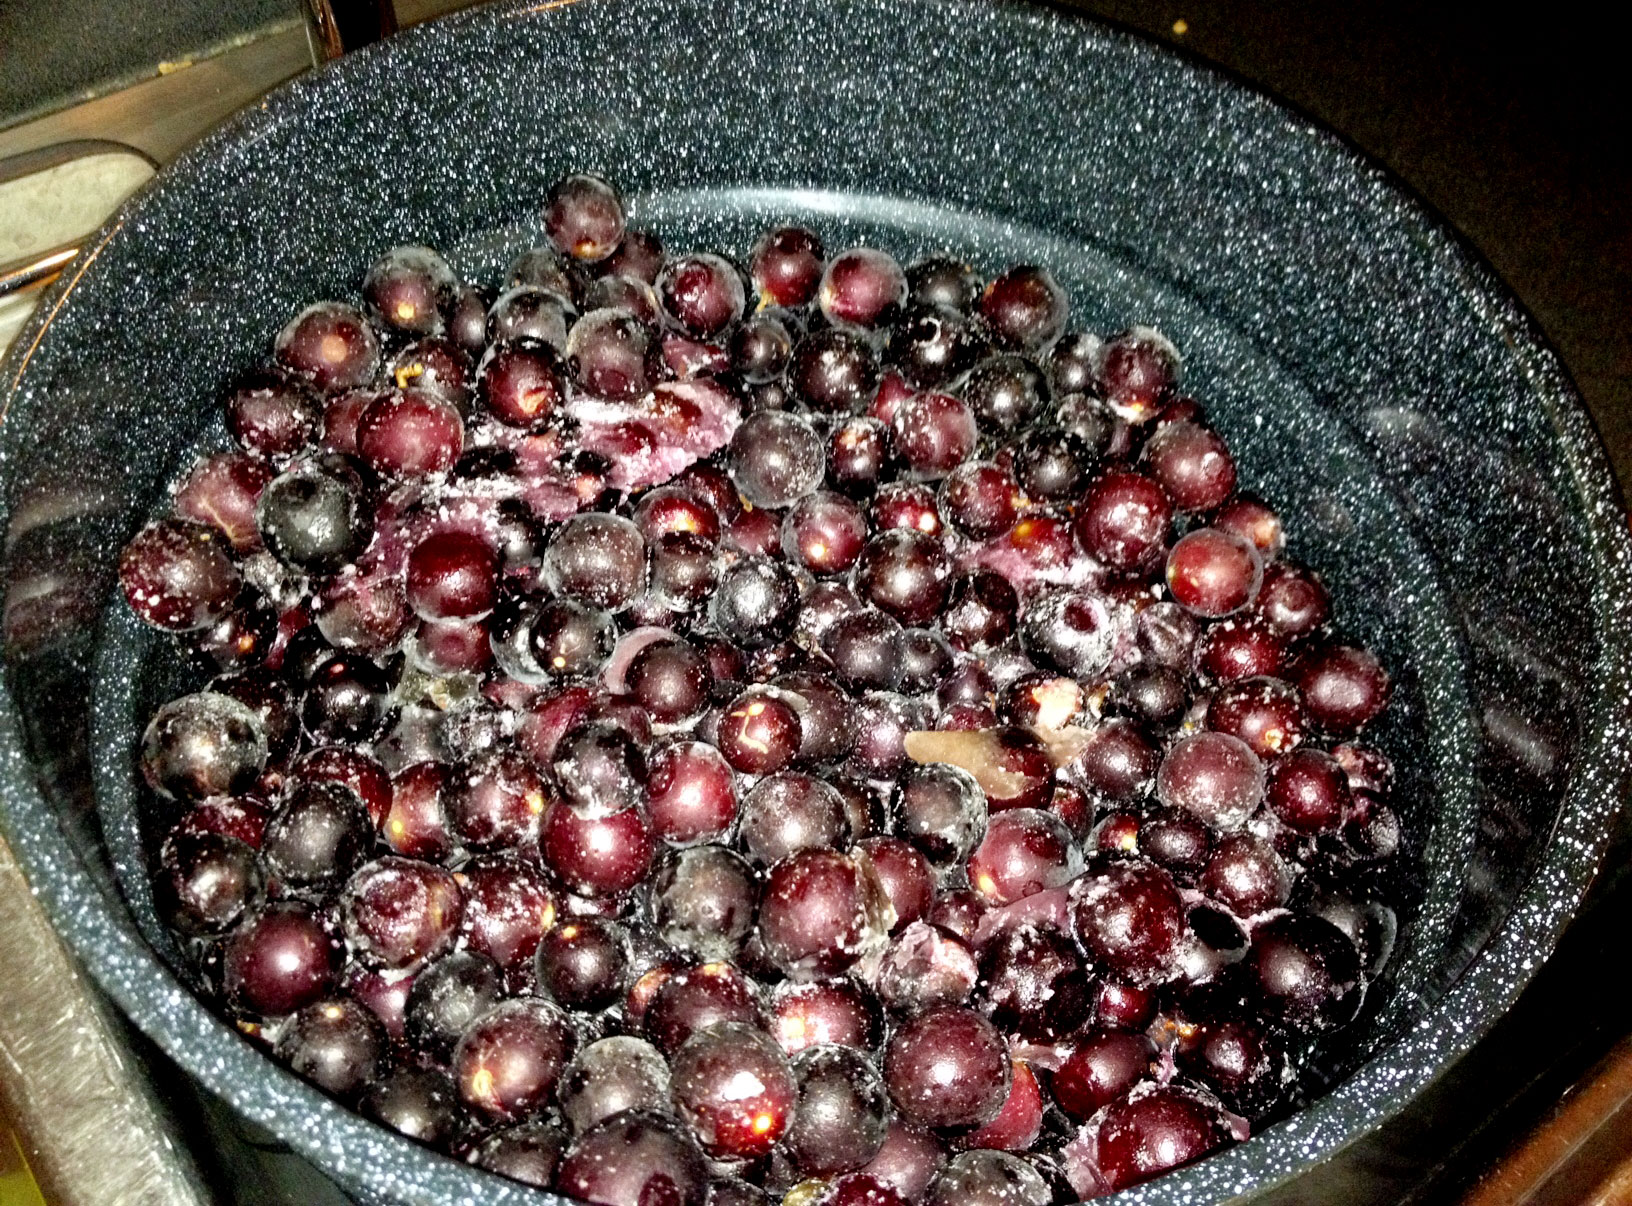 What to Do With Muscadines?